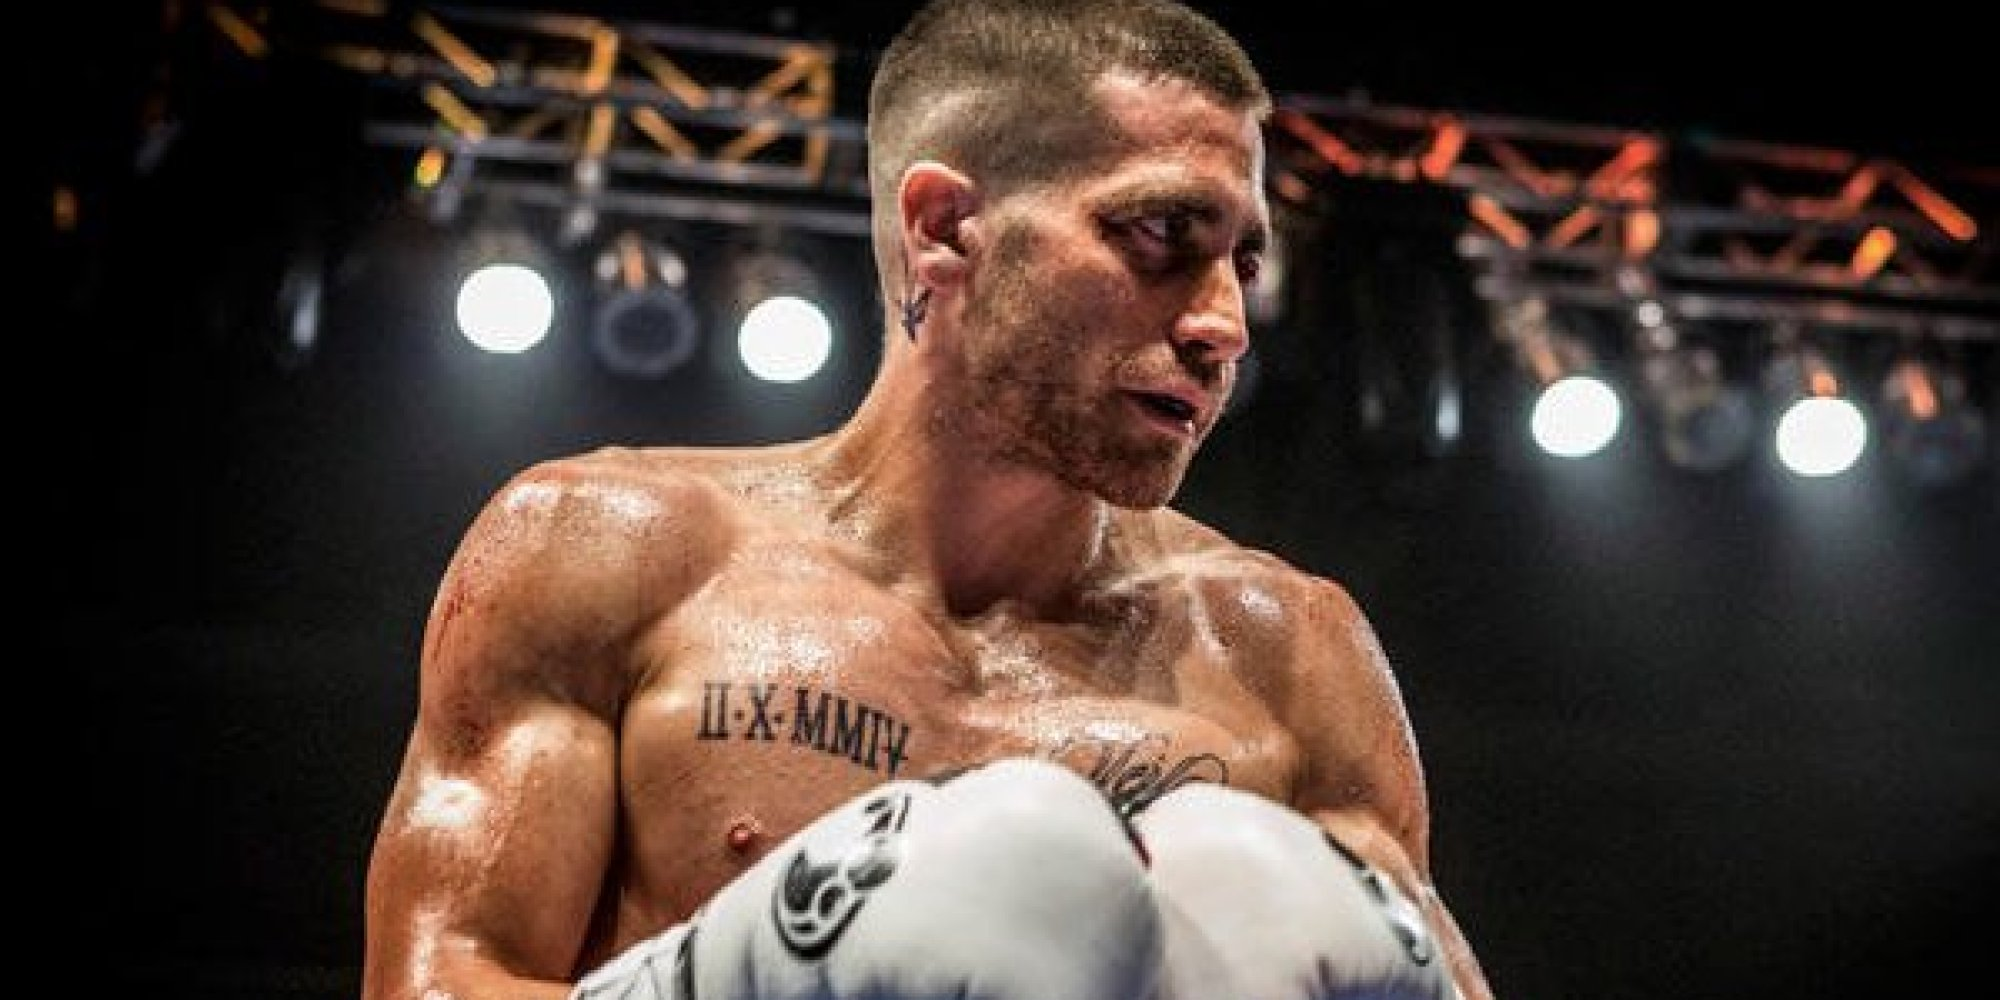 Prince Of Persia Hd Wallpaper Jake Gyllenhaal S Intense Workout For Southpaw Boxer